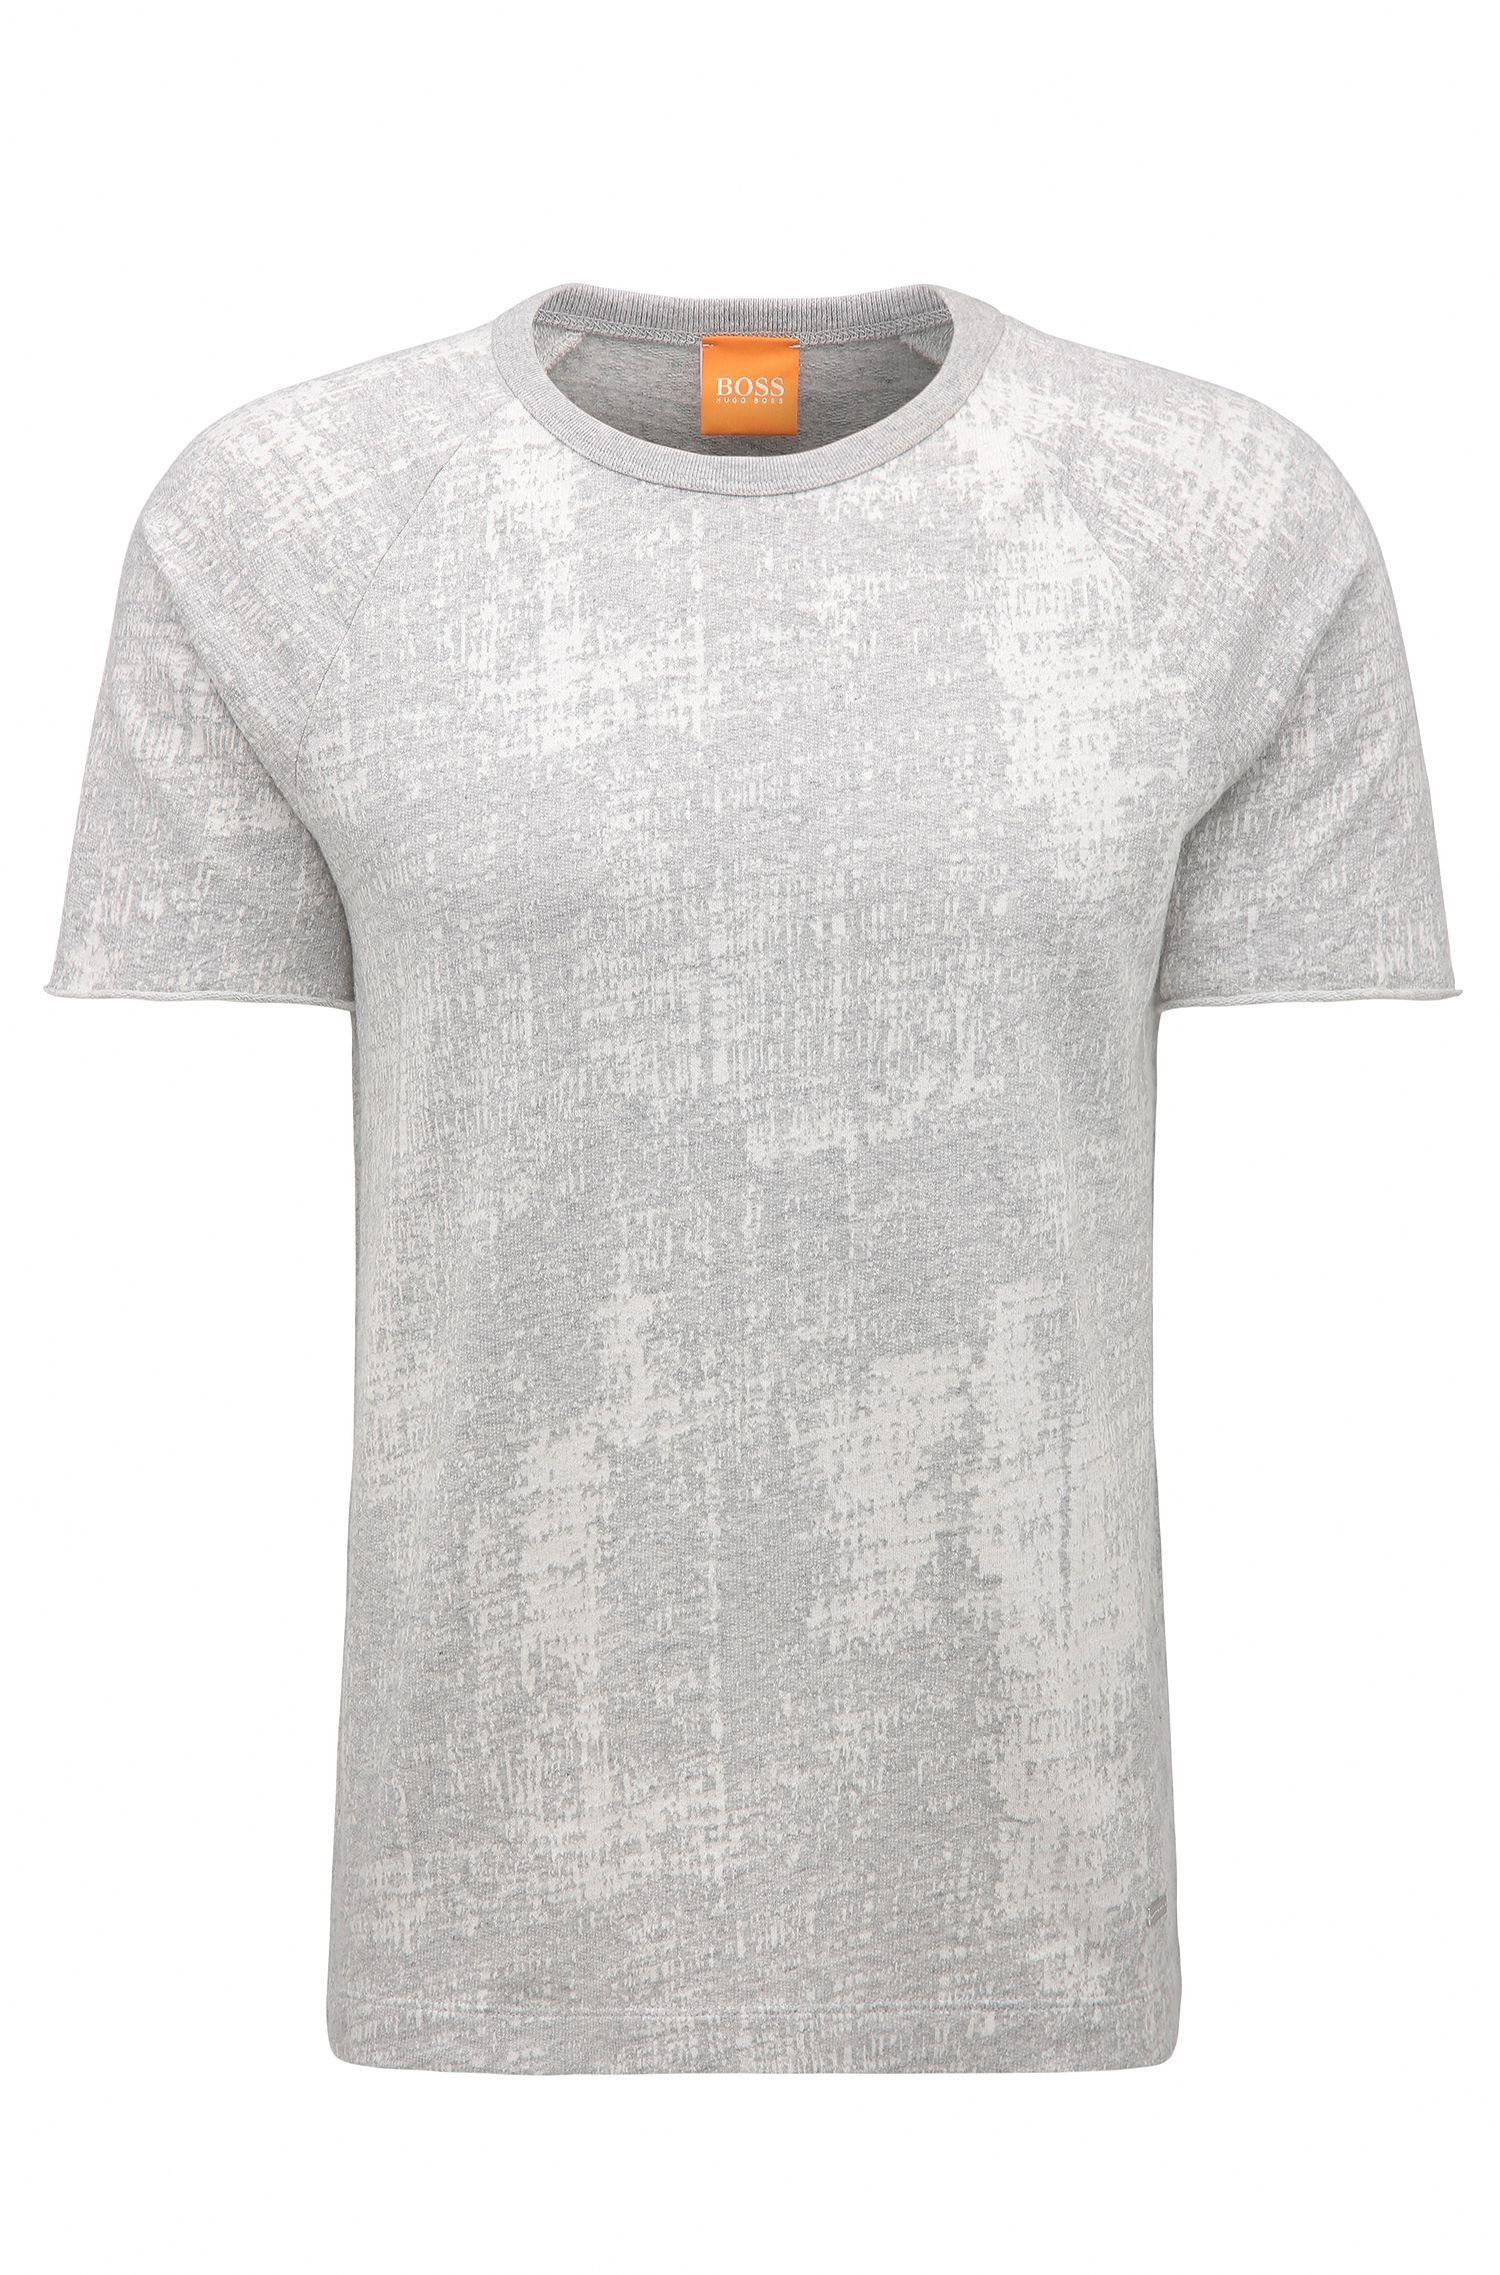 Relaxed-fit T-shirt in cotton jacquard